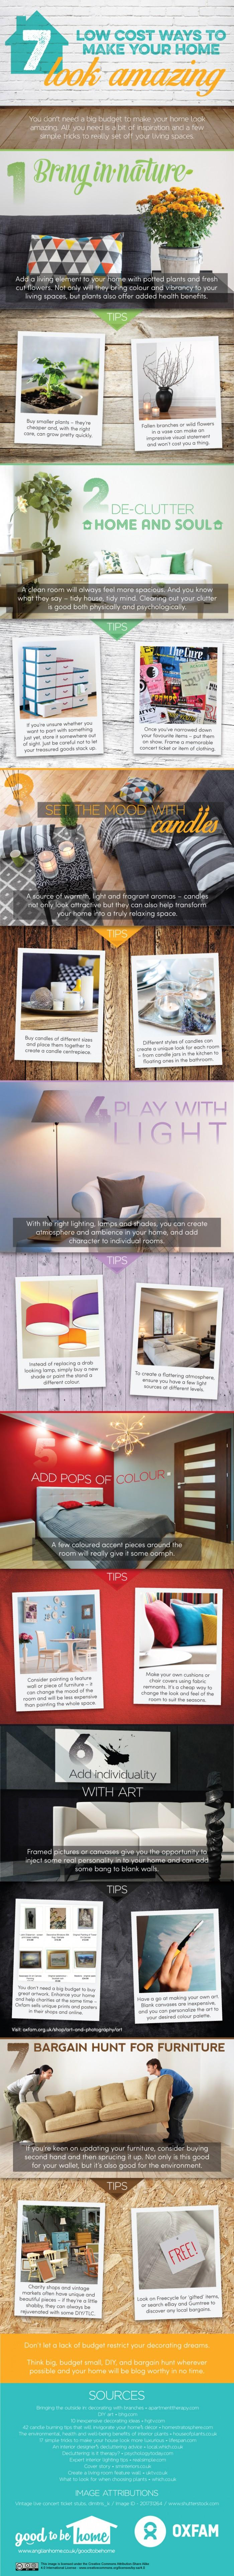 7-low-cost-ways-to-make-your-home-look-amazing